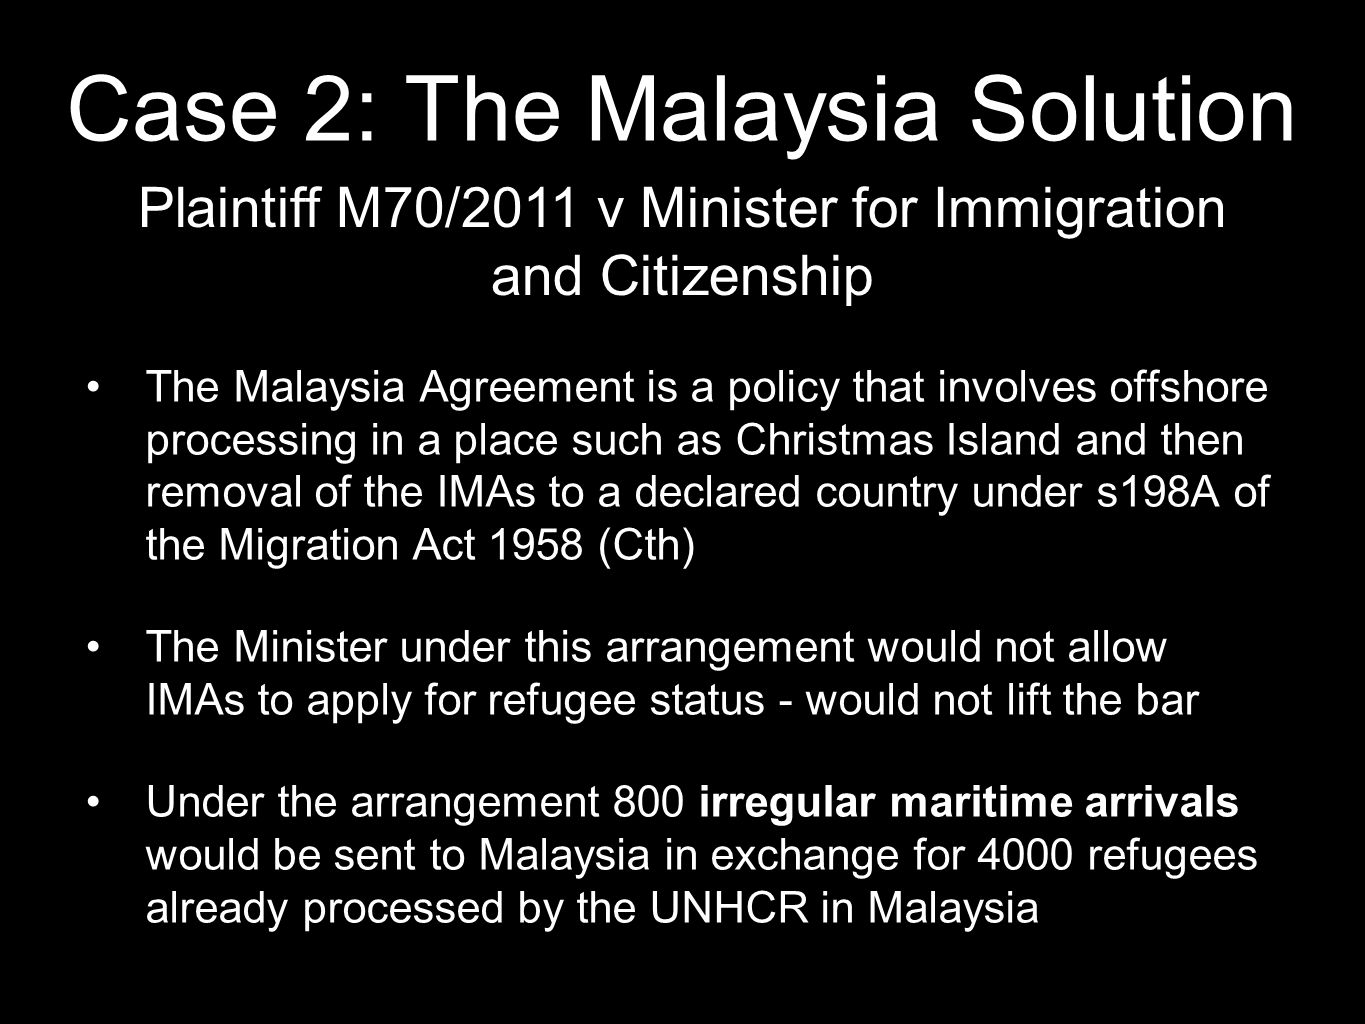 Case 2: The Malaysia Solution